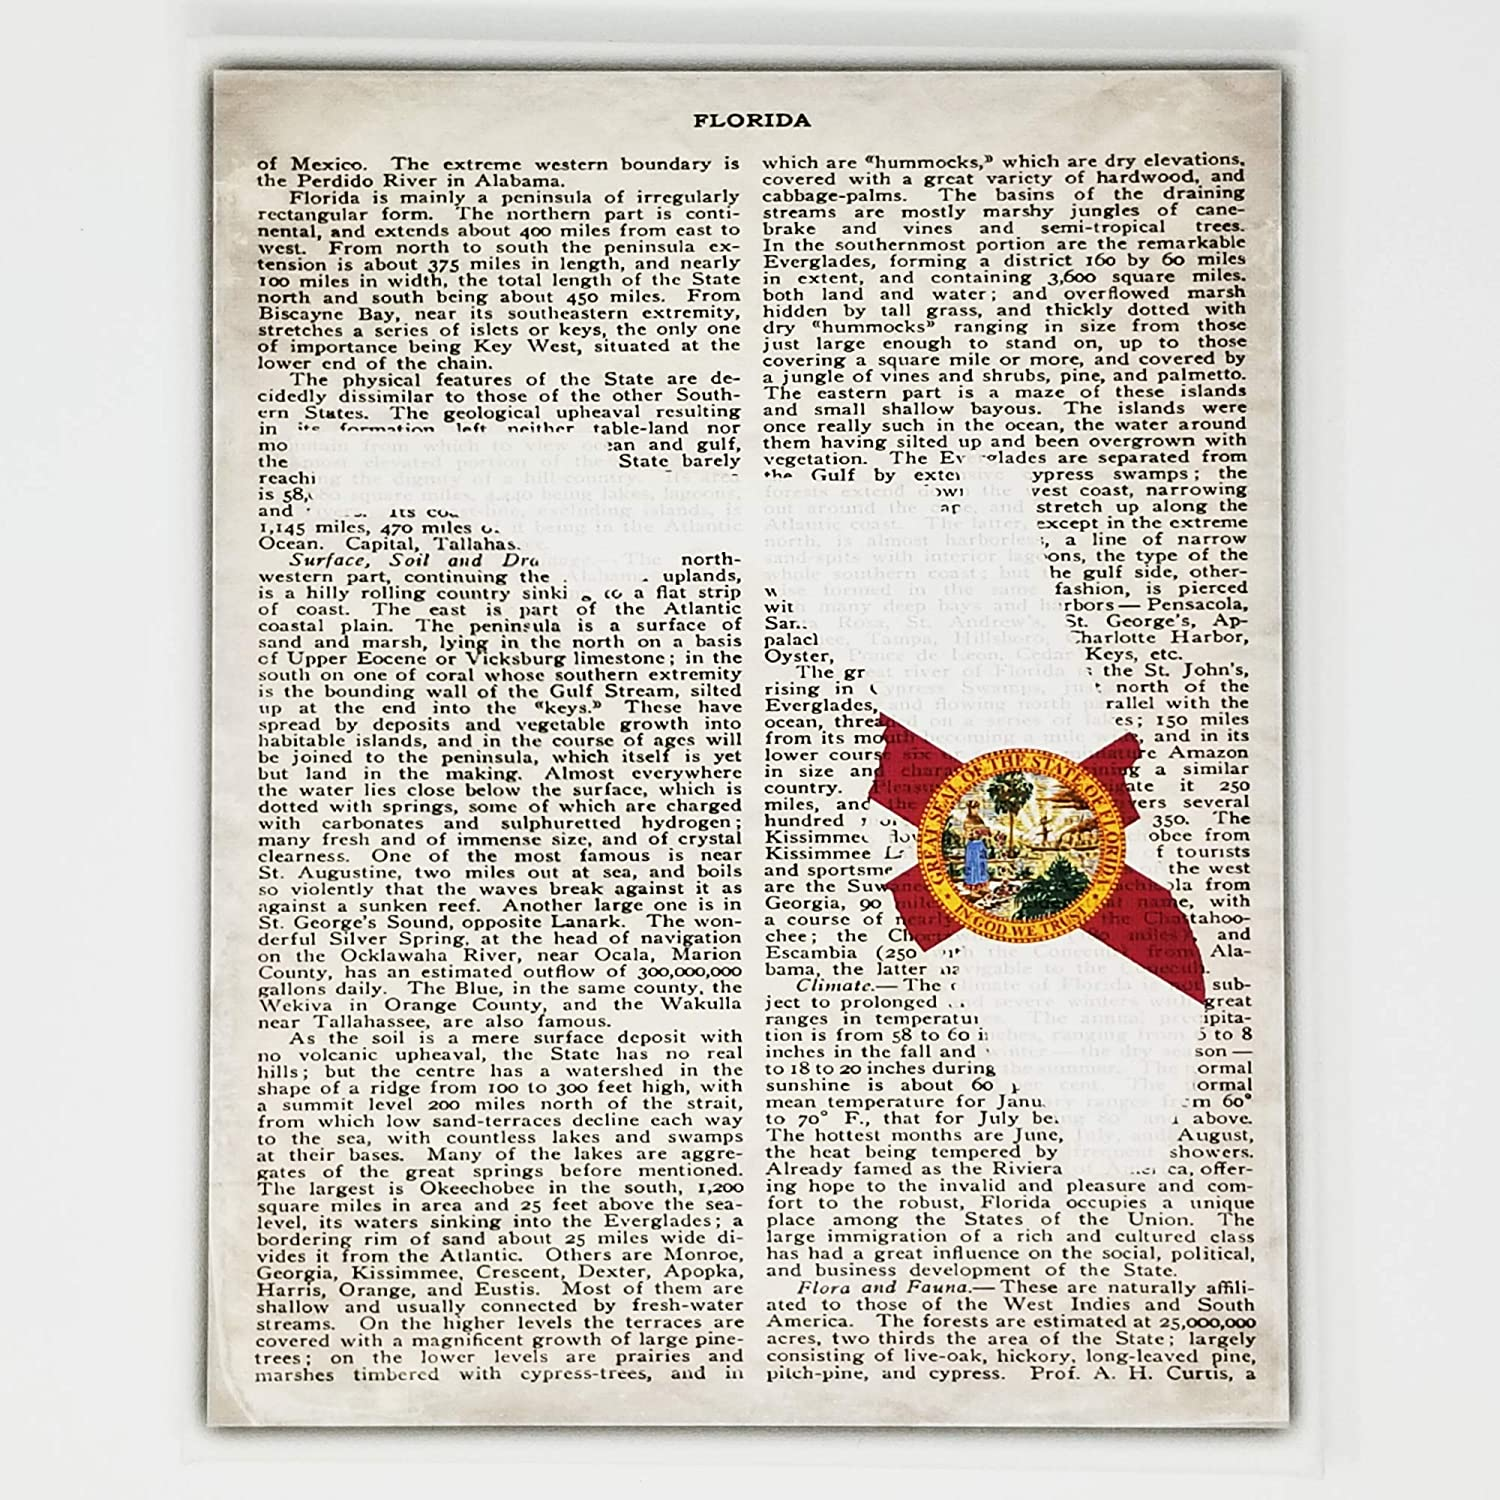 Florida Flag Canvas Wall Decor - 8x10 Decorative FL State Map Silhouette Encyclopedia Art Print - Ready To Hang - Home State Love Handmade Gifts - FLA Decorations